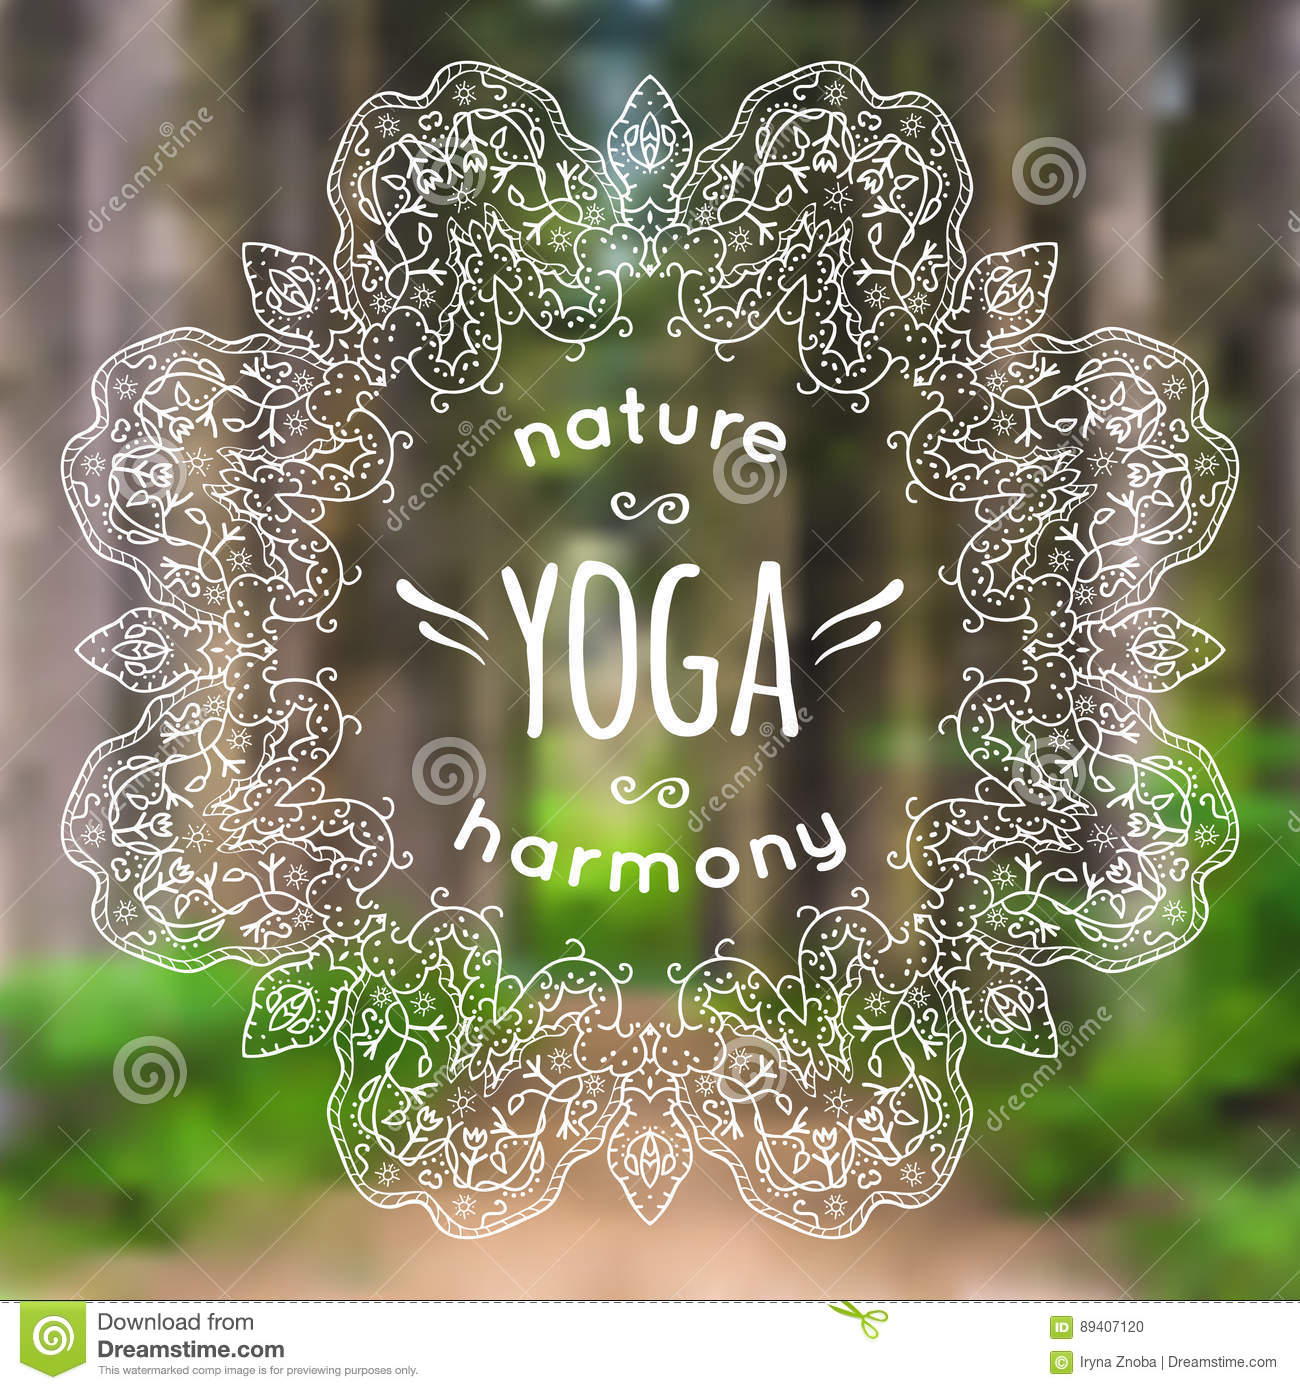 Wandposter Natur Vector Illustration With Mandala And Yoga Label On Blurred Nature